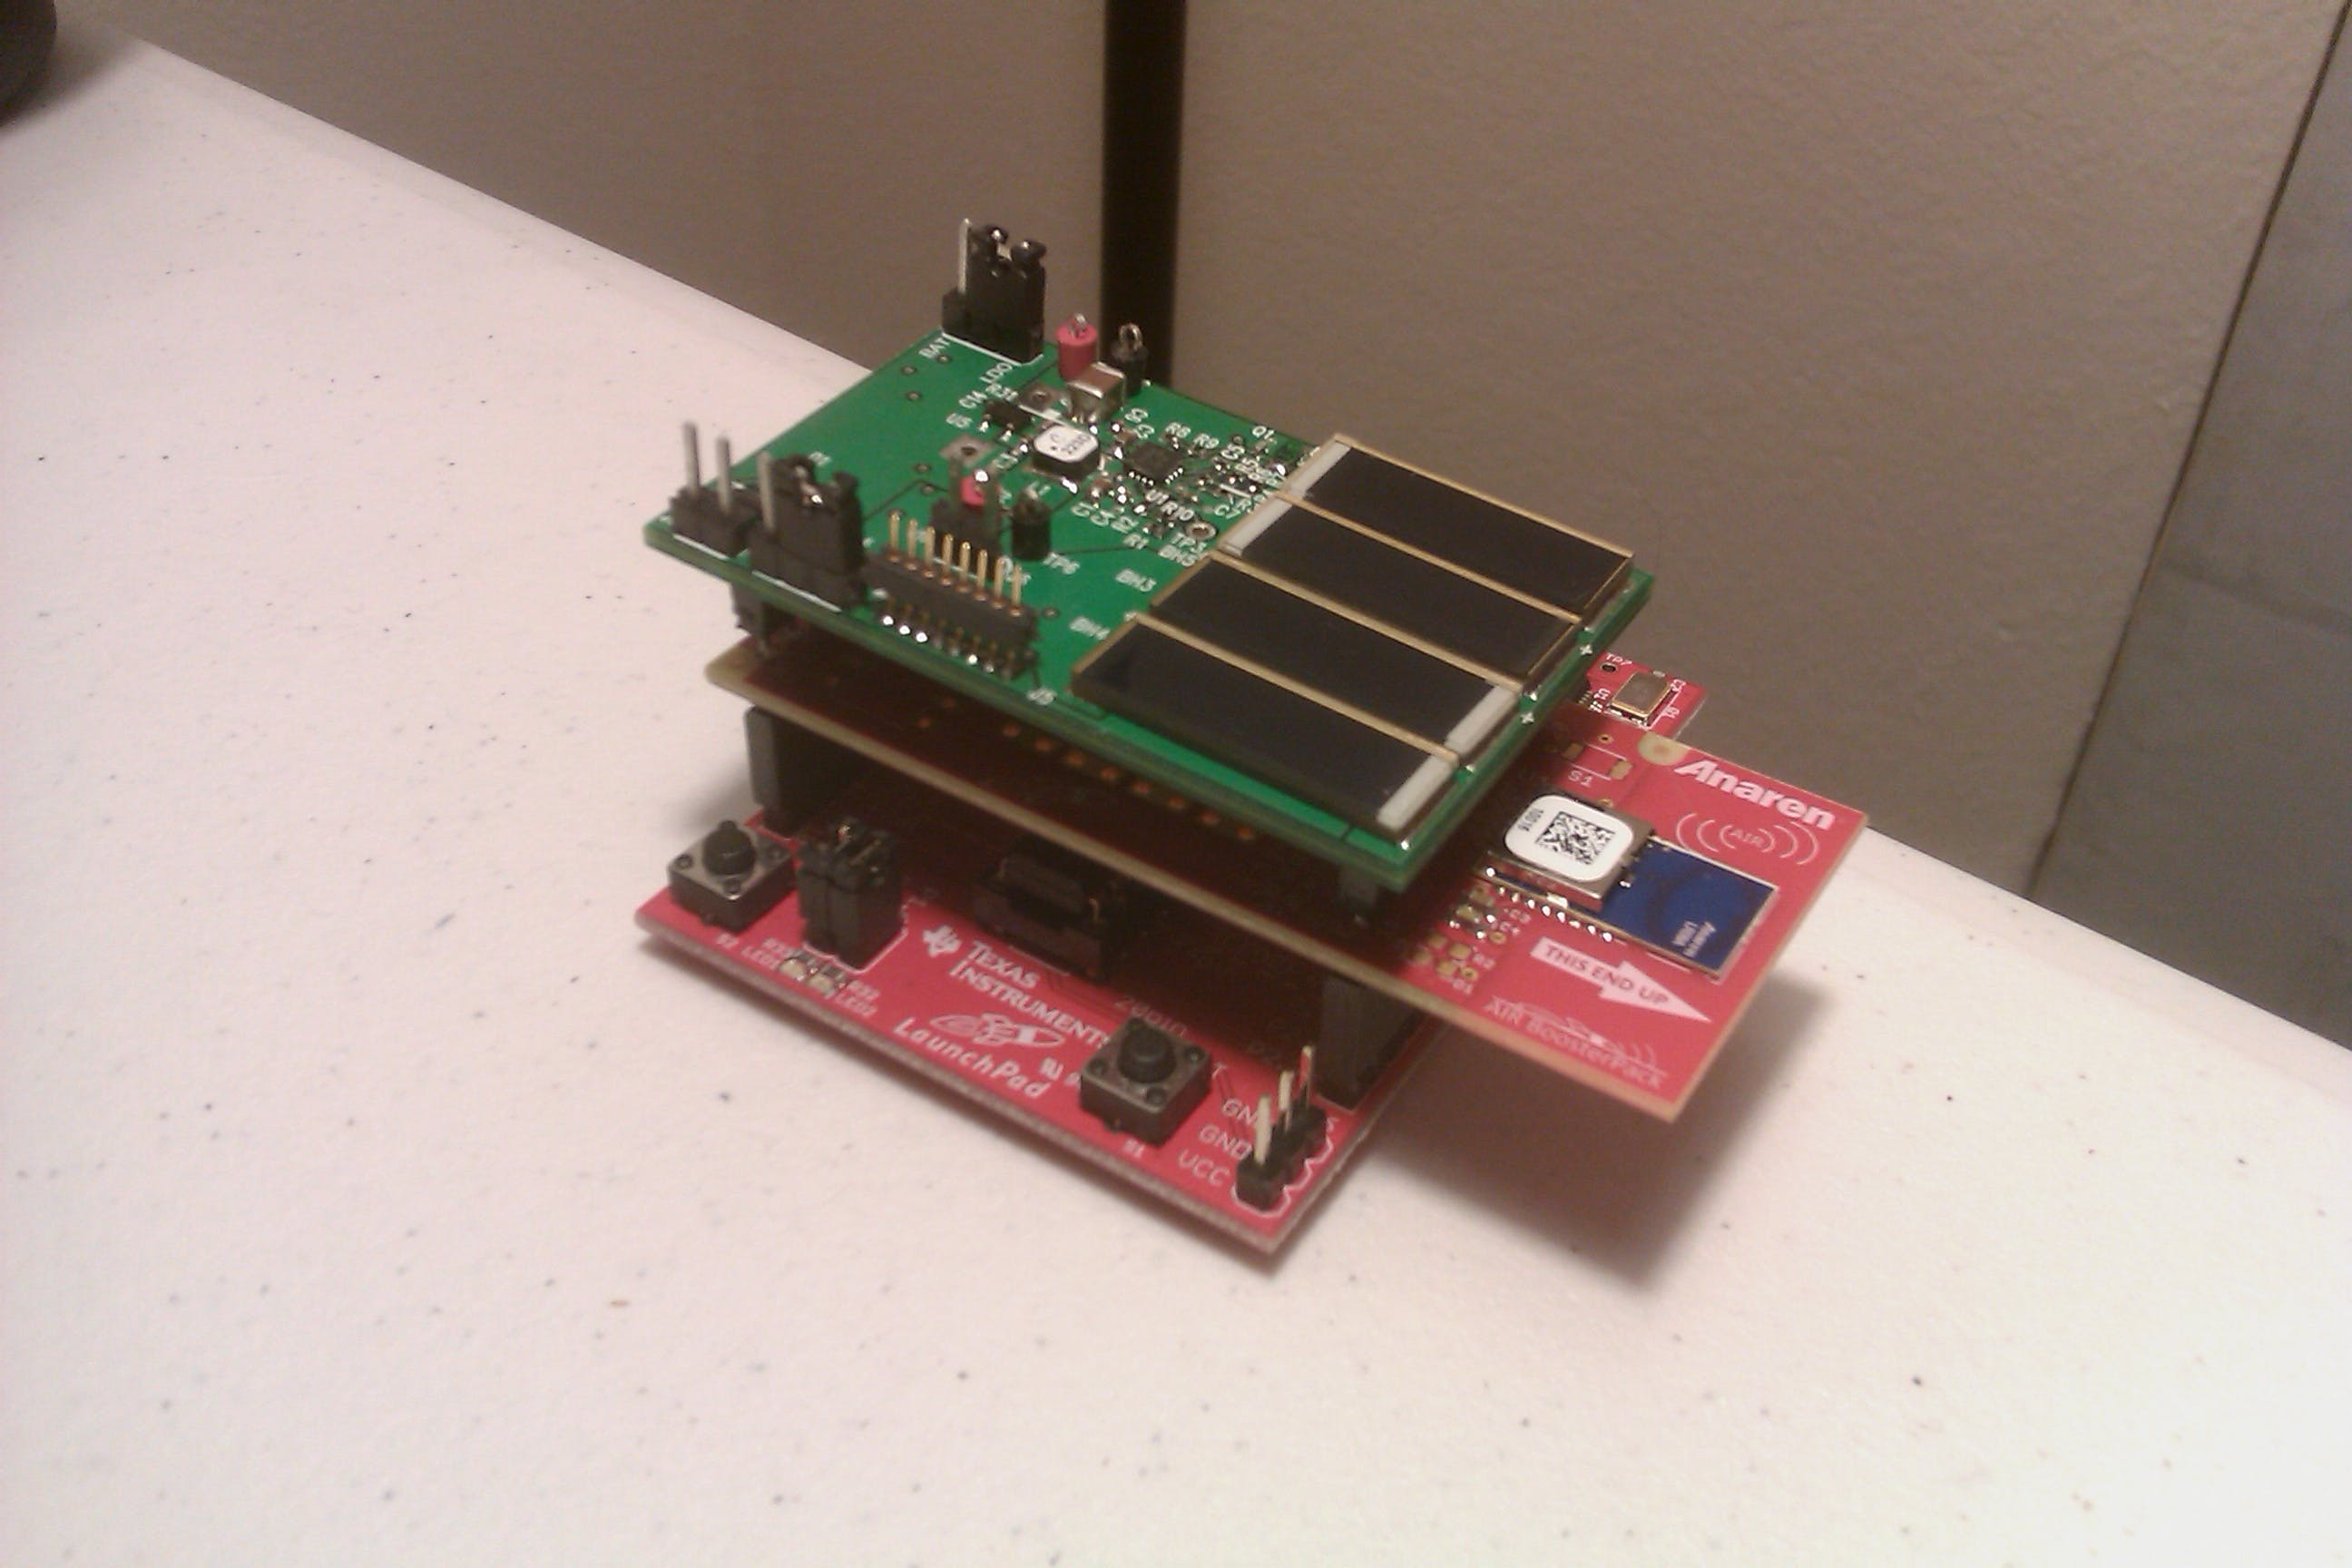 Wireless Sensor Network + bq25504 Energy Harvesting BoosterPack for LaunchPad